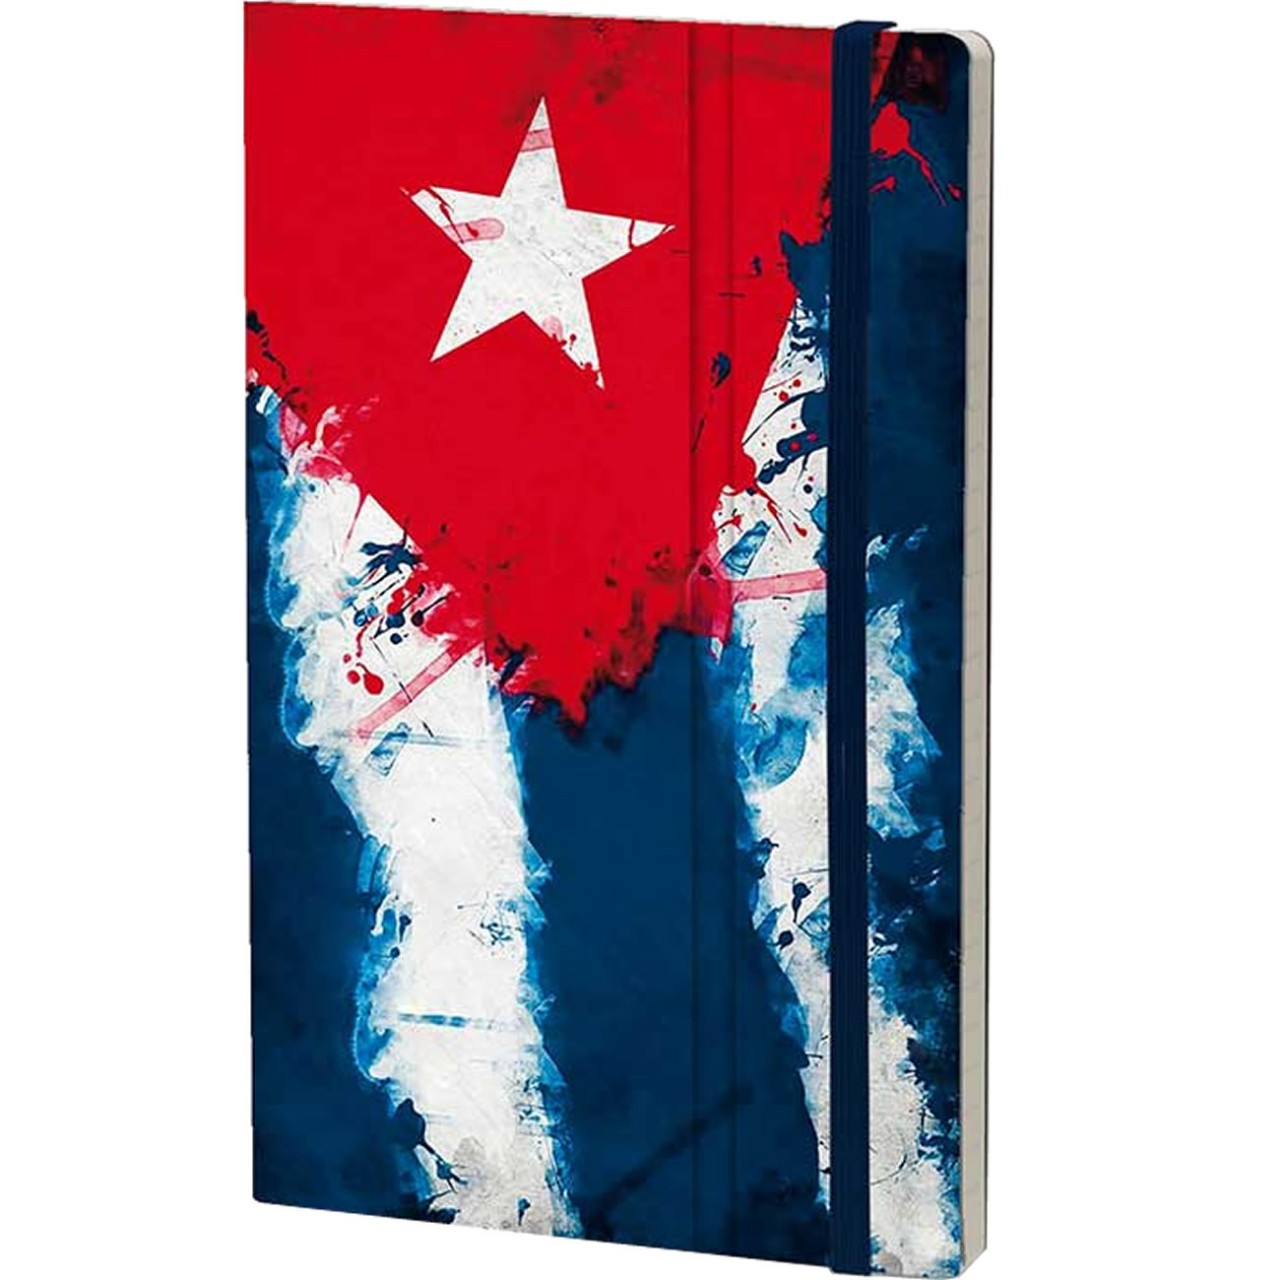 Stifflexible Notizbuch HISTORICAL NOTES 13 x 21 cm 192 S., HASTA LA VICTORIA SIEMPRE! (Cuba Flag)